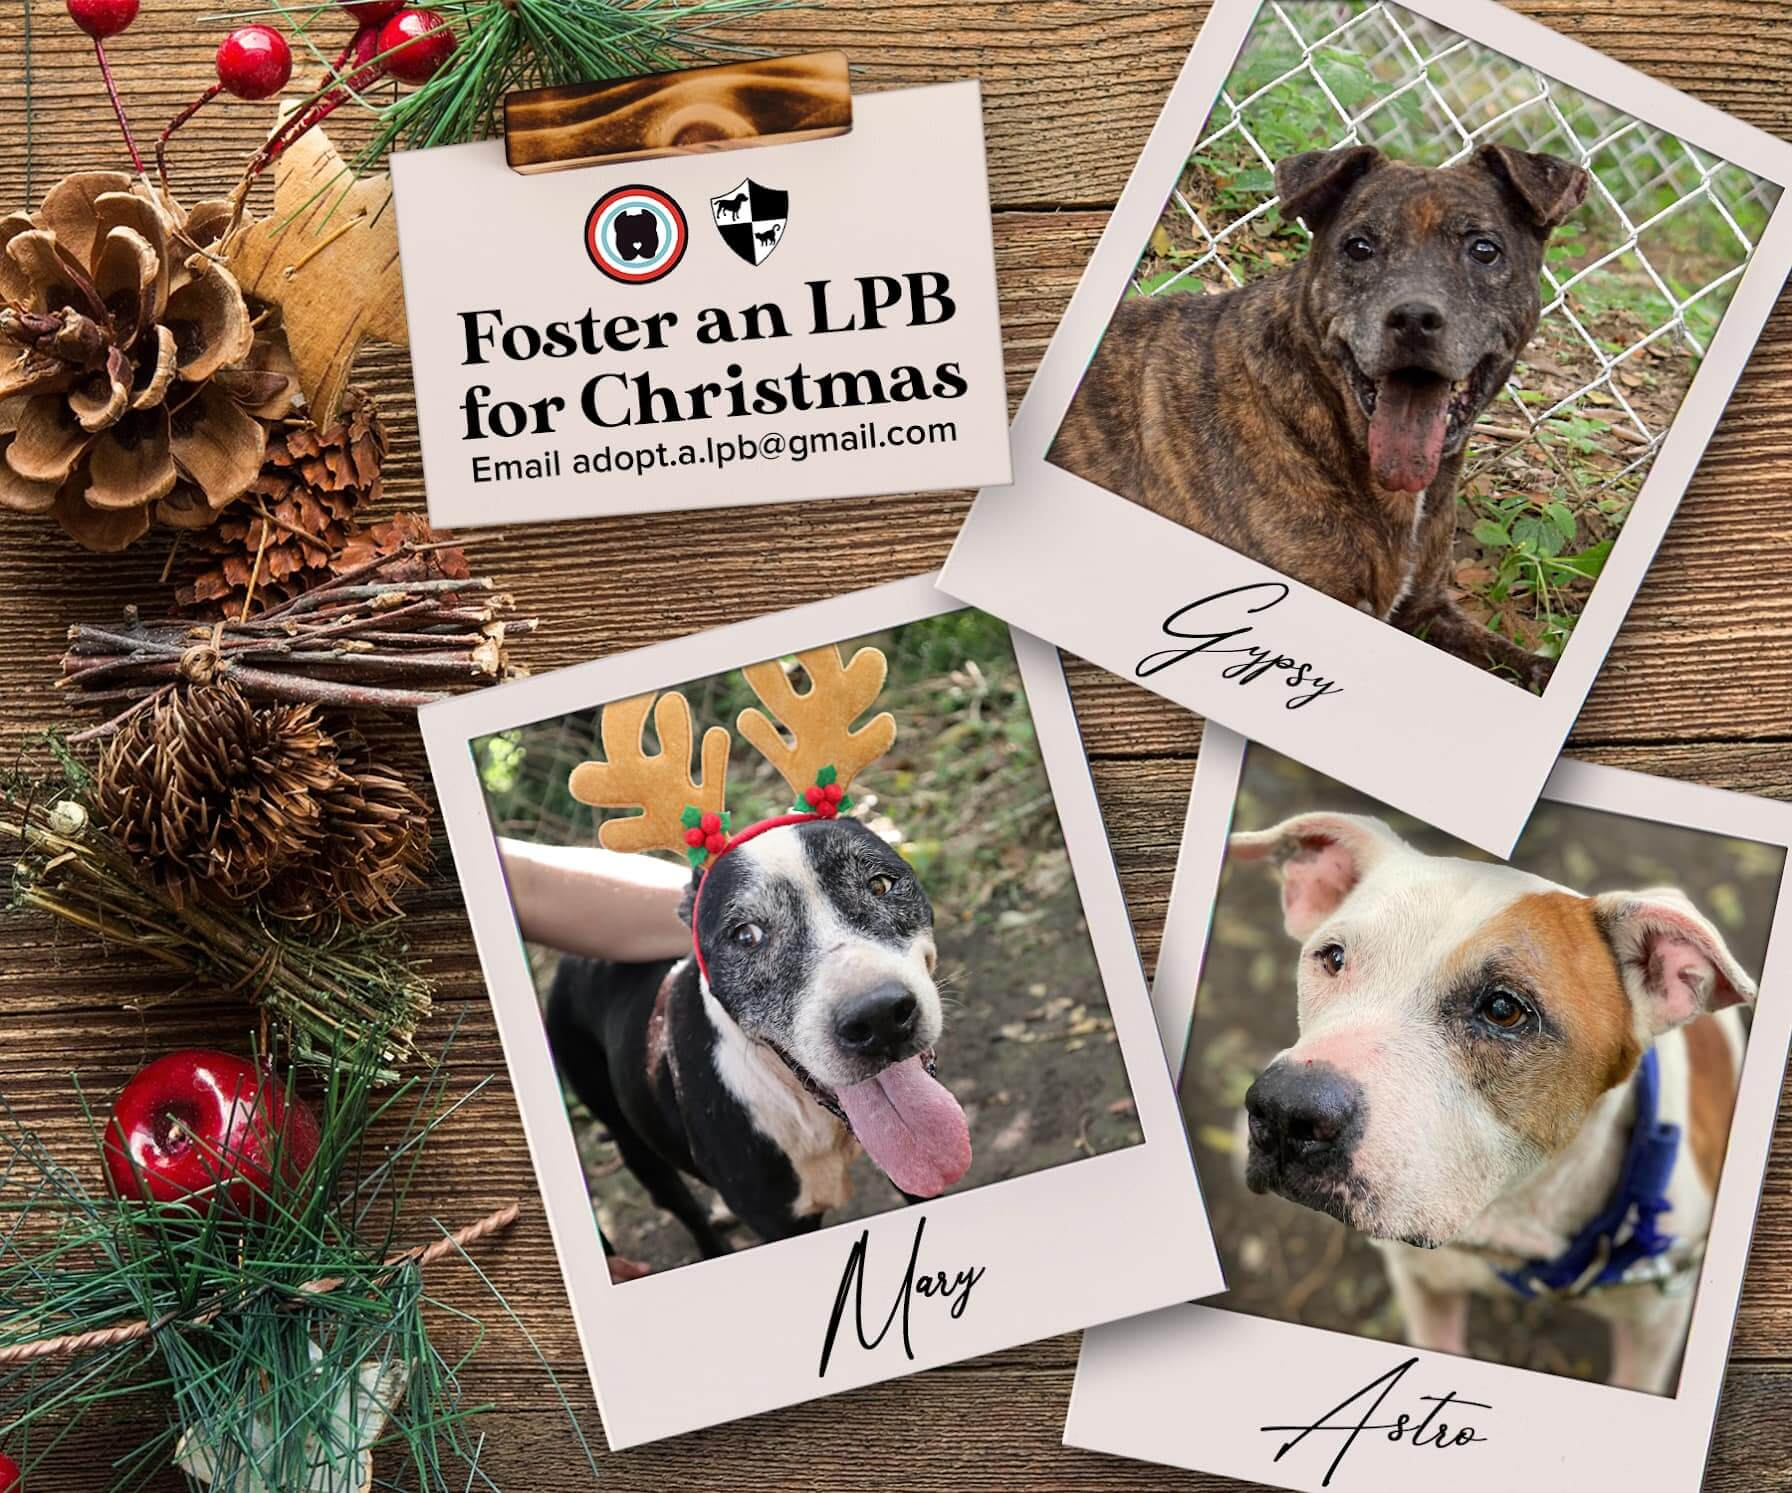 Foster an LPB for Christmas promo. Email: adopt.a.lpb@gmail.com